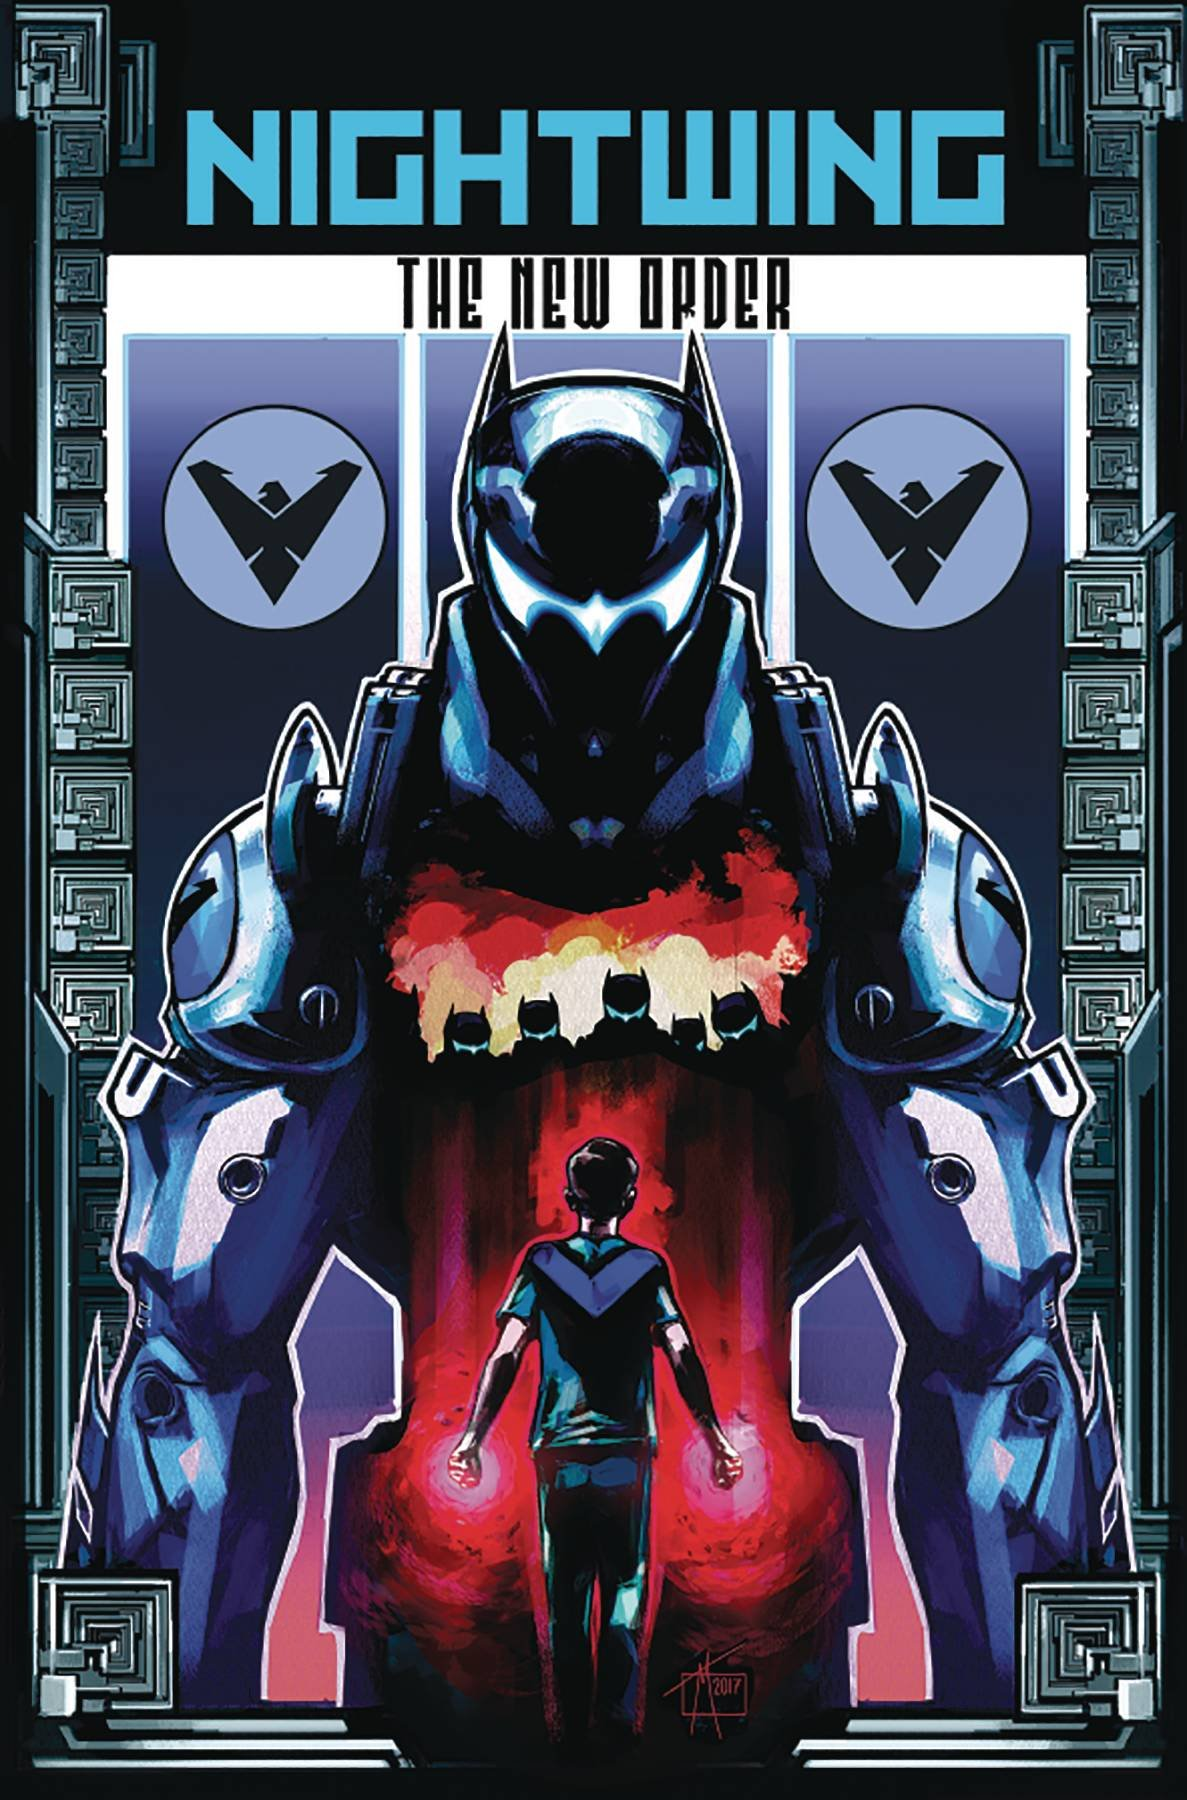 NIGHTWING THE NEW ORDER #2 (OF 6) Release date 9/27/17 pdf epub